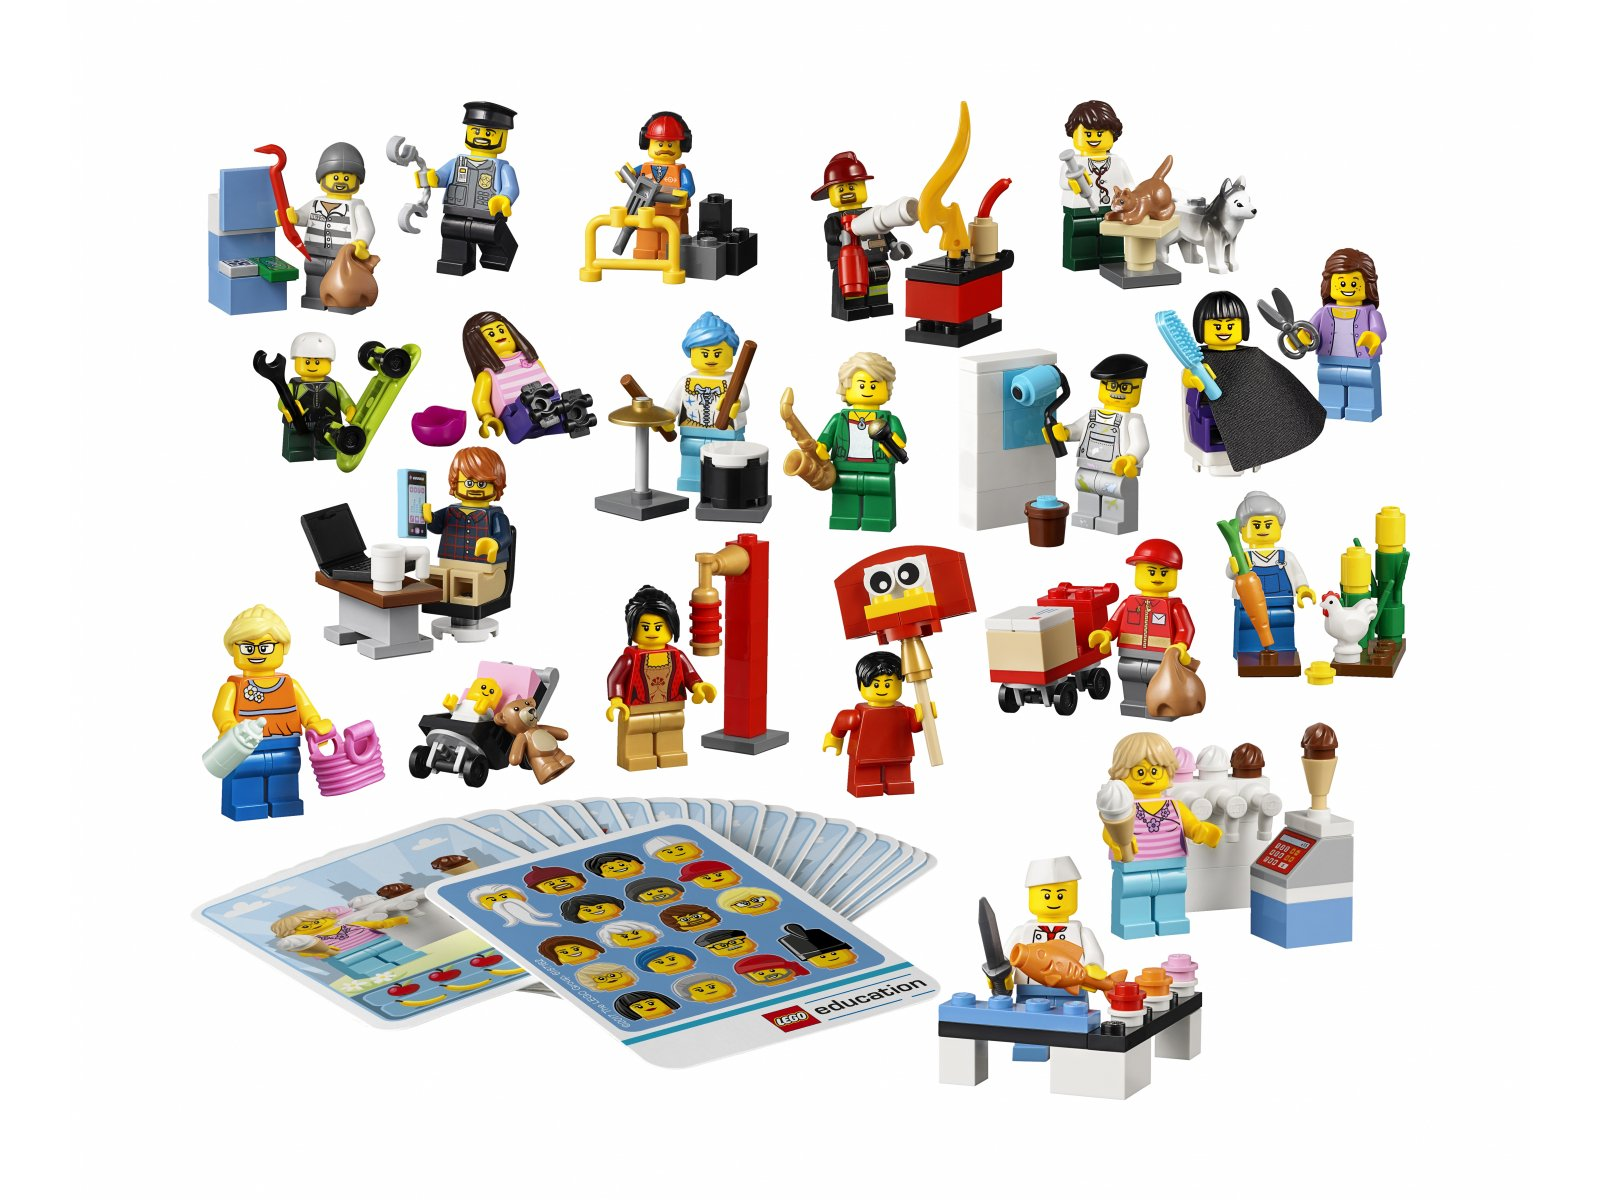 LEGO 45022 Education Community Minifigure Set